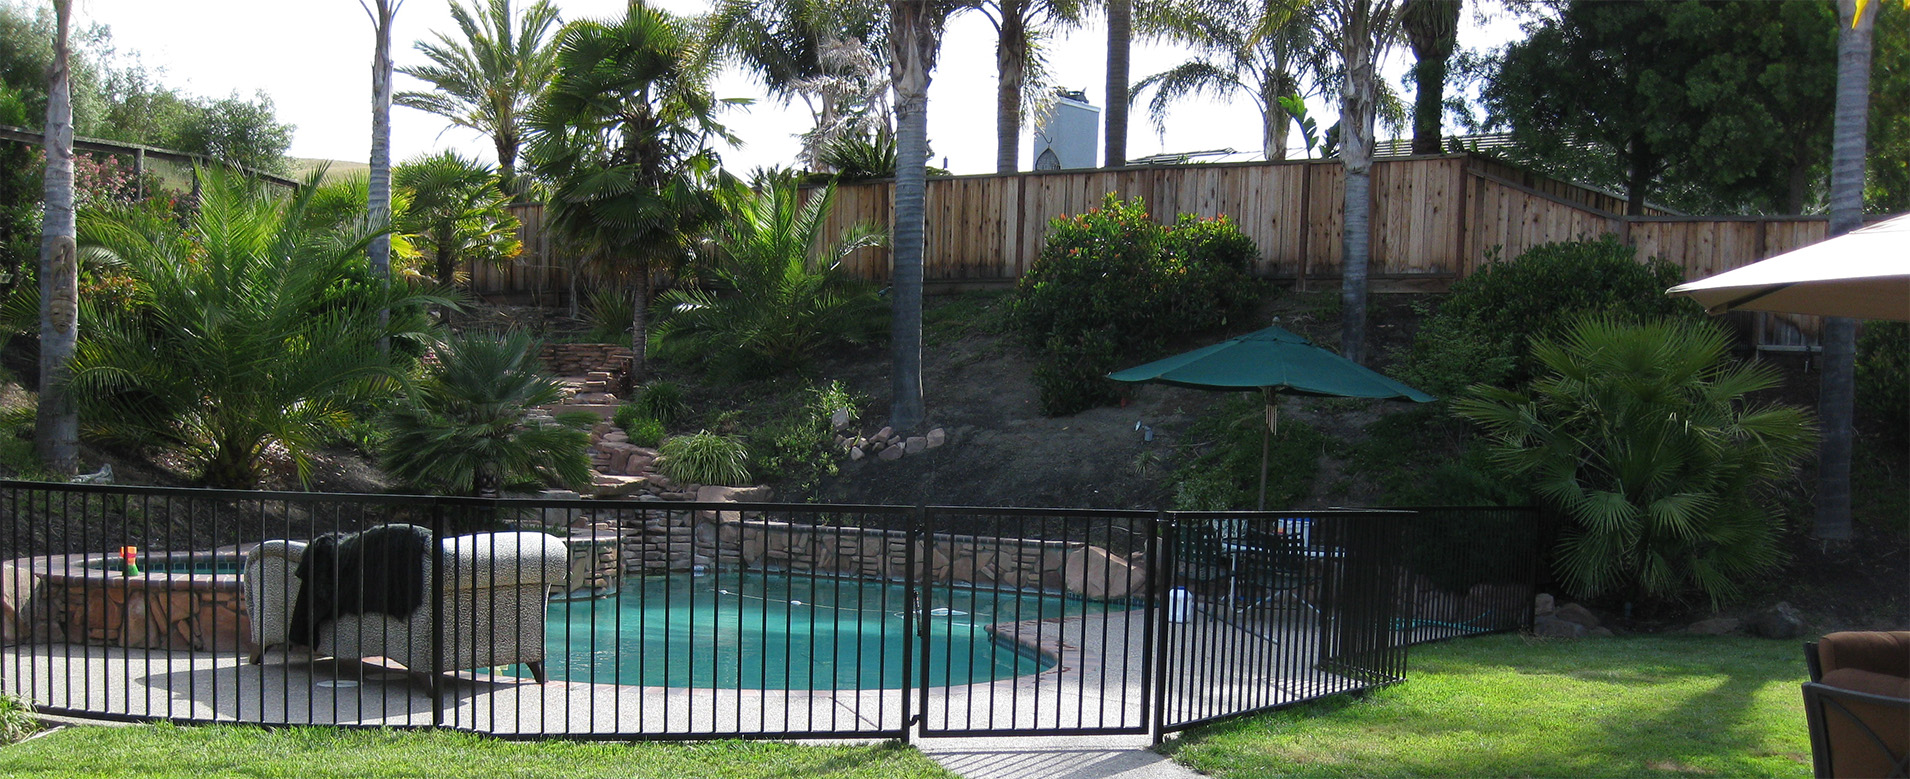 Commercial Amp Residential Fencing Company Livermore Ca